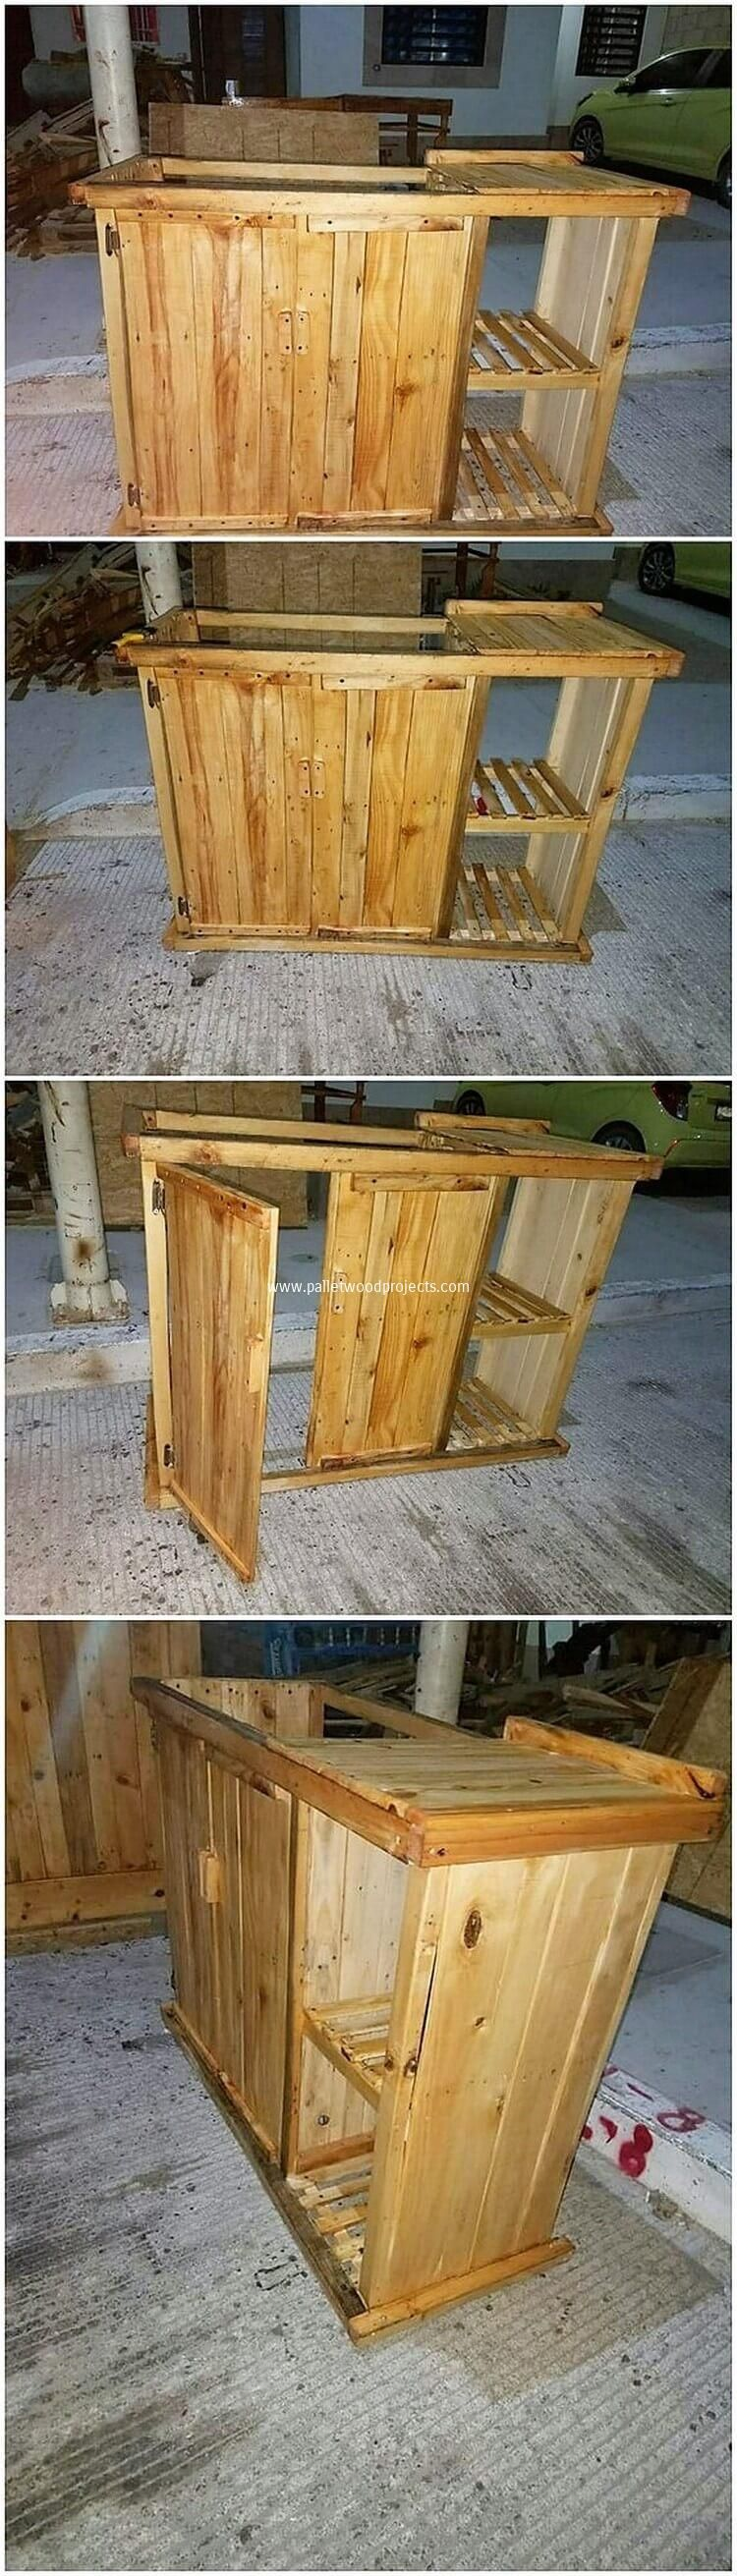 This Is Such A Lovely Design Of The Pallet Sink